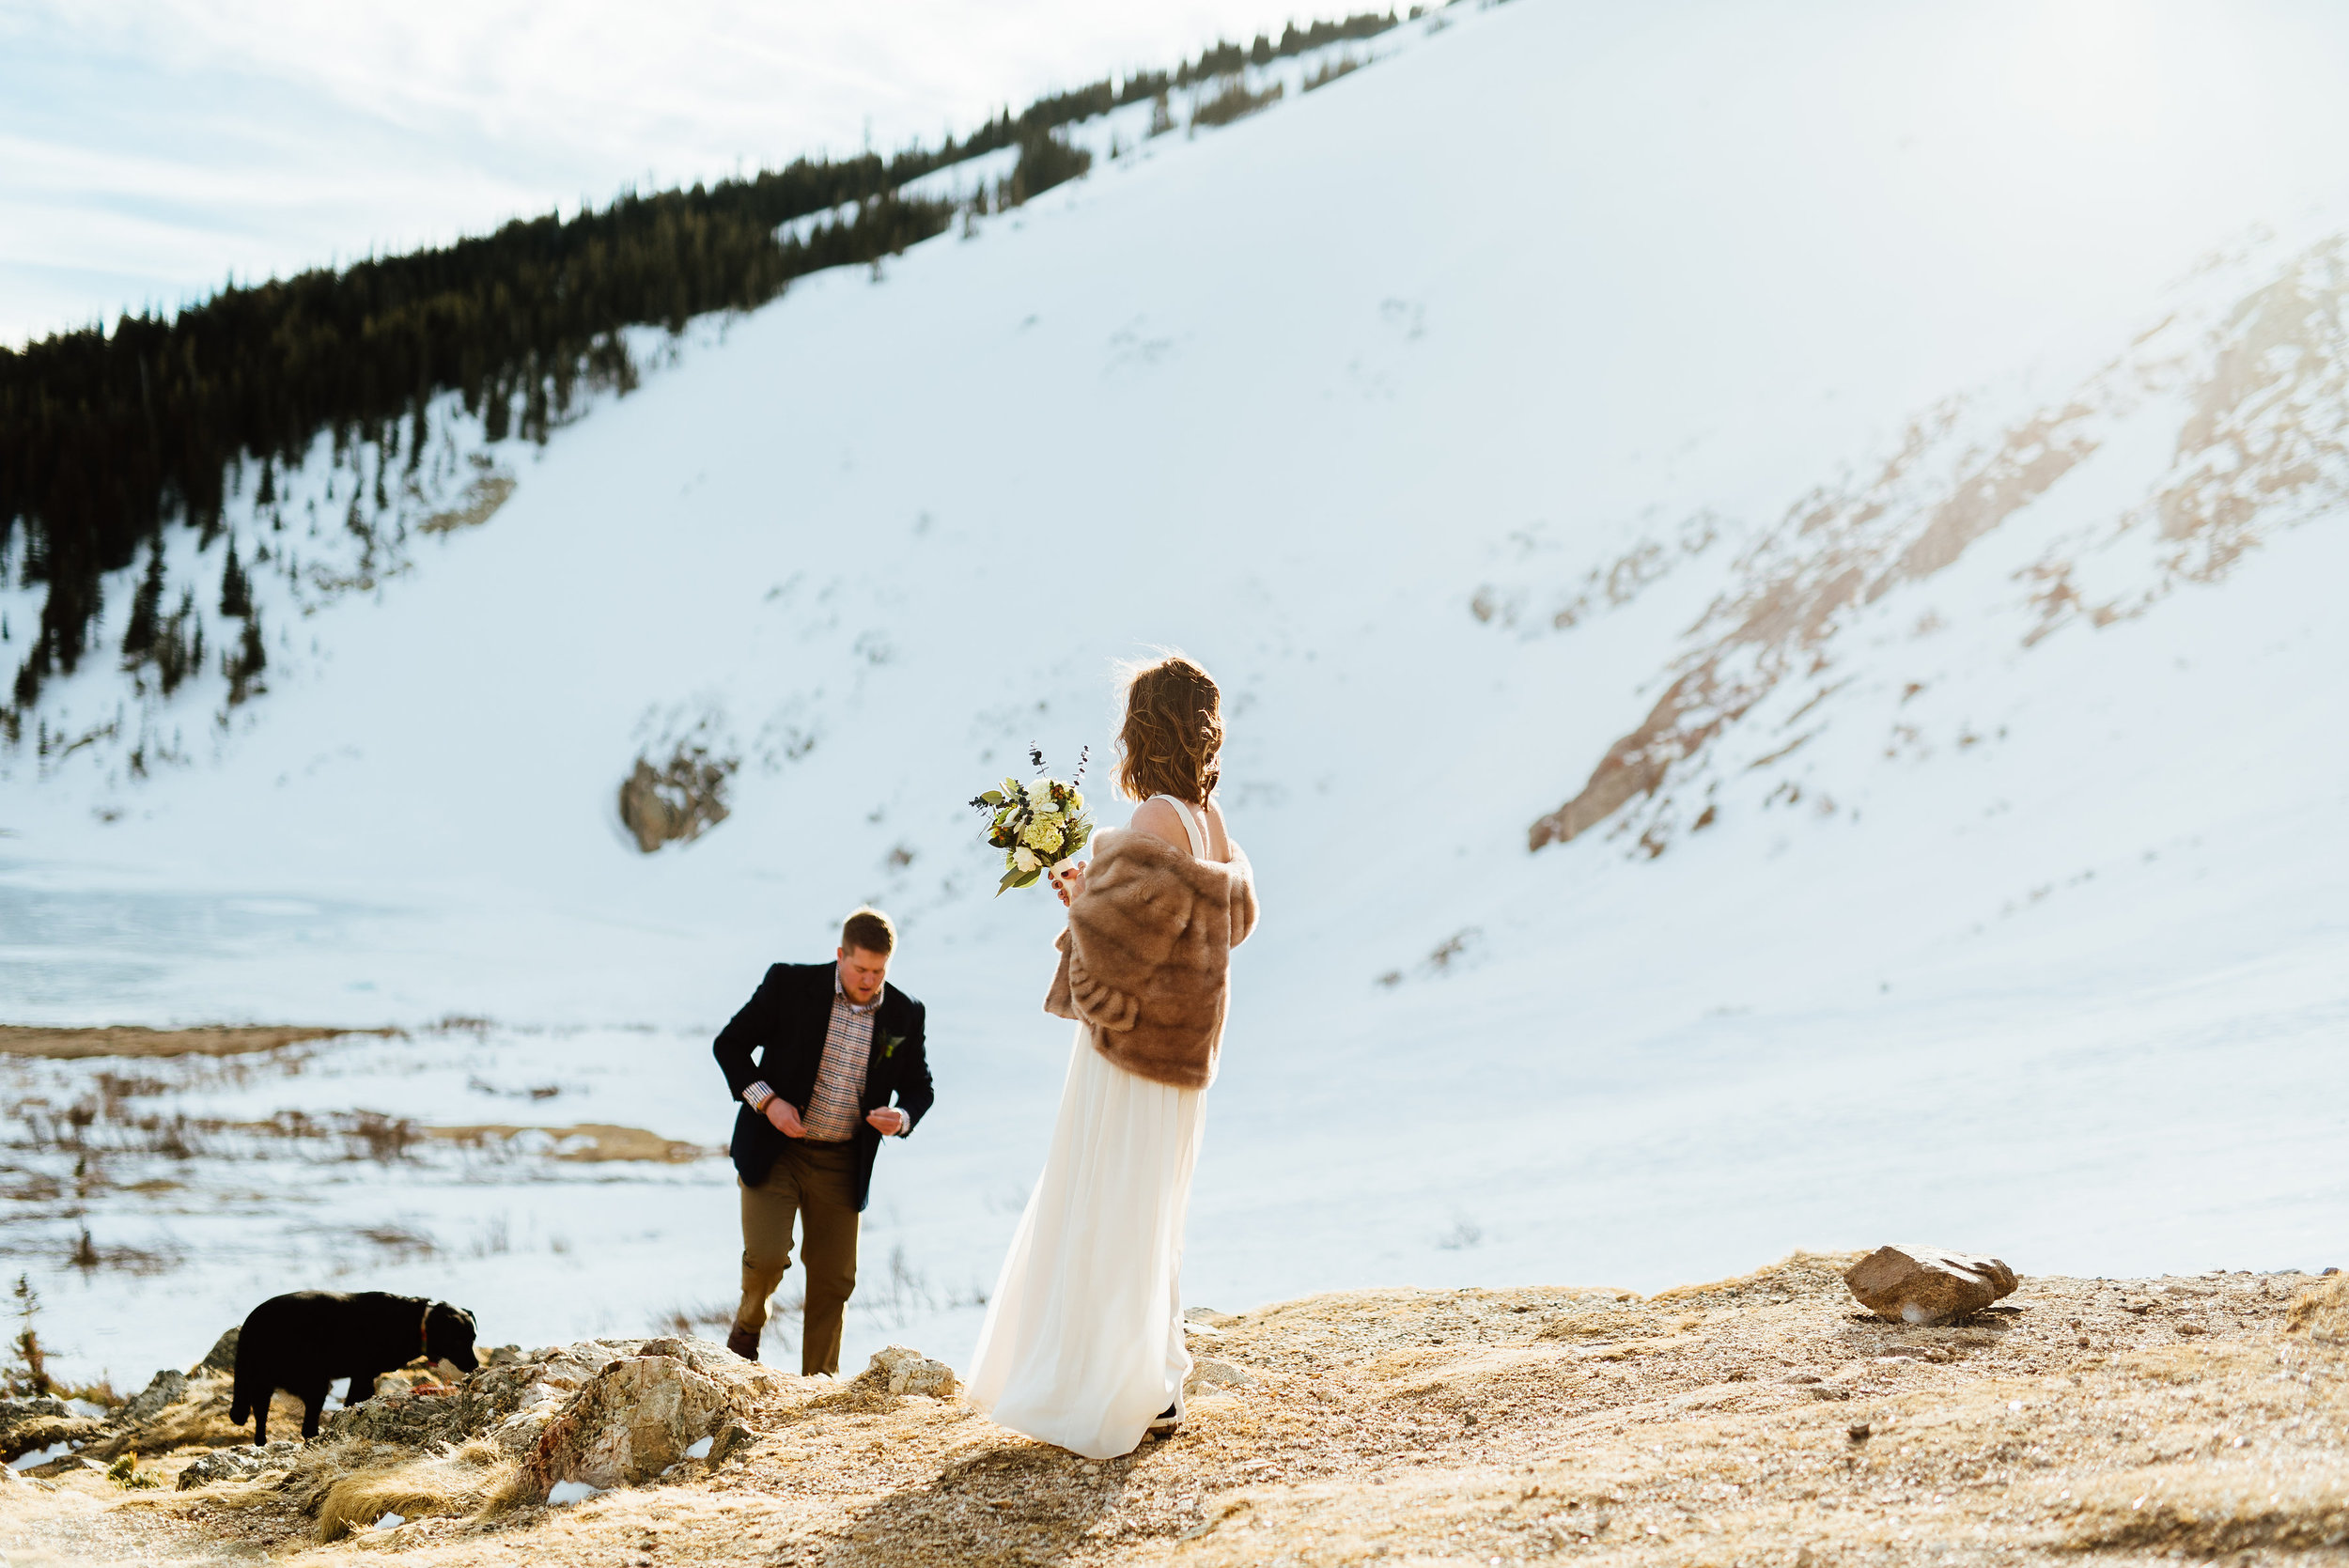 I love this gorgeous view on St. Mary's Glacier in Idaho Springs, Colorado. It's such a gorgeous and wild outdoor ceremony spot perfect for a winter wedding.| Intimate mountain wedding photos by outdoor elopement photographer, Maddie Mae.